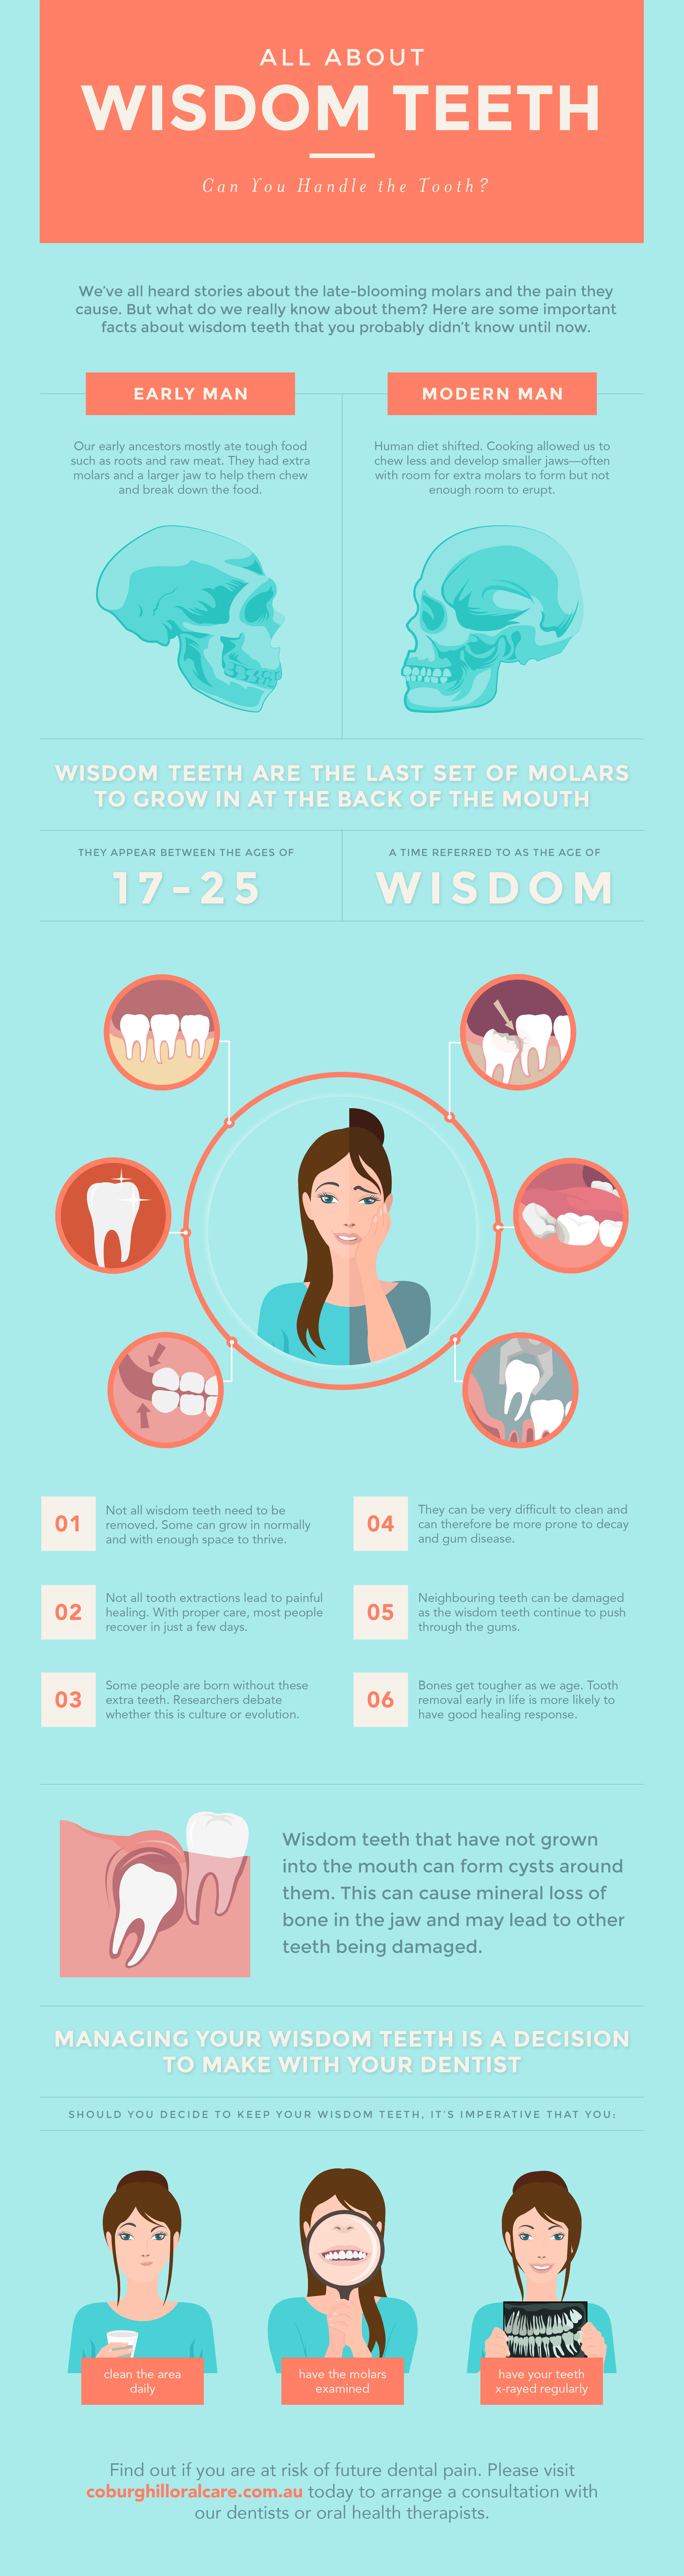 Can You Manage Your Wisdom Teeth? Infographic